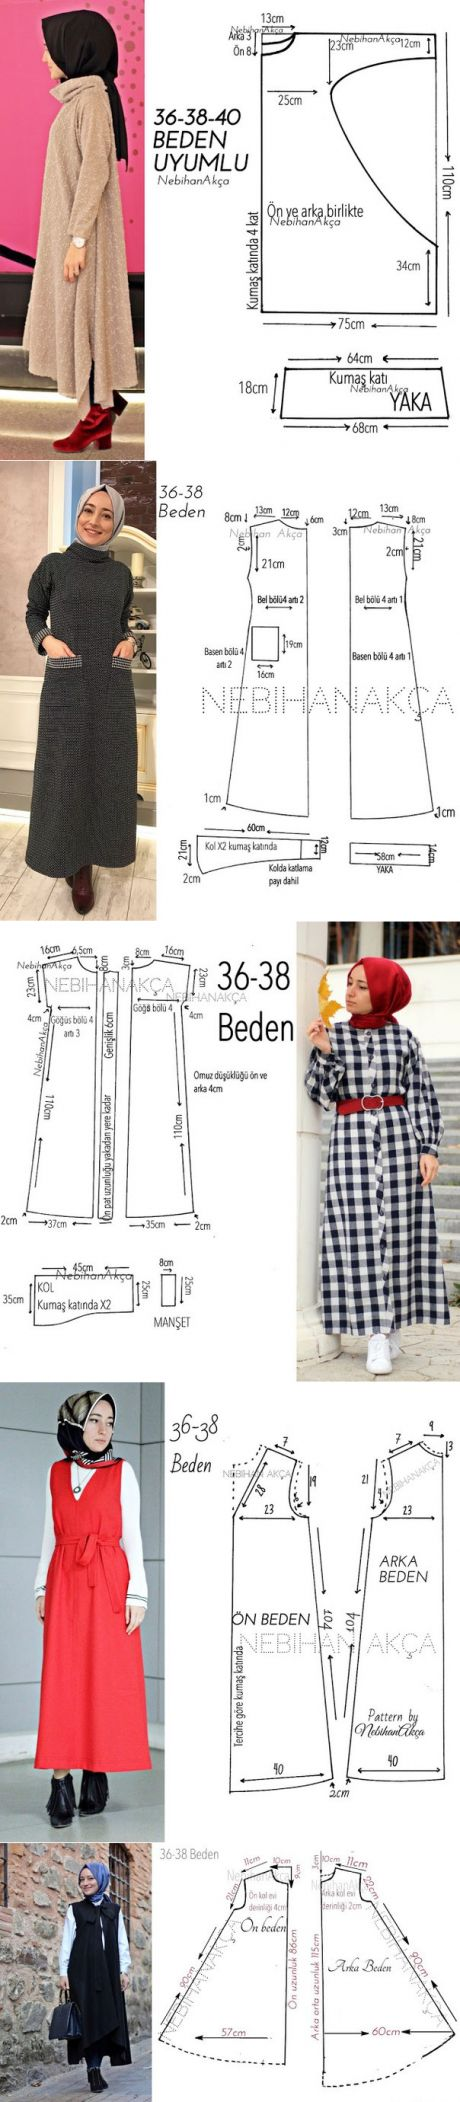 Sewing ✂ Patterns. Selection of patterns